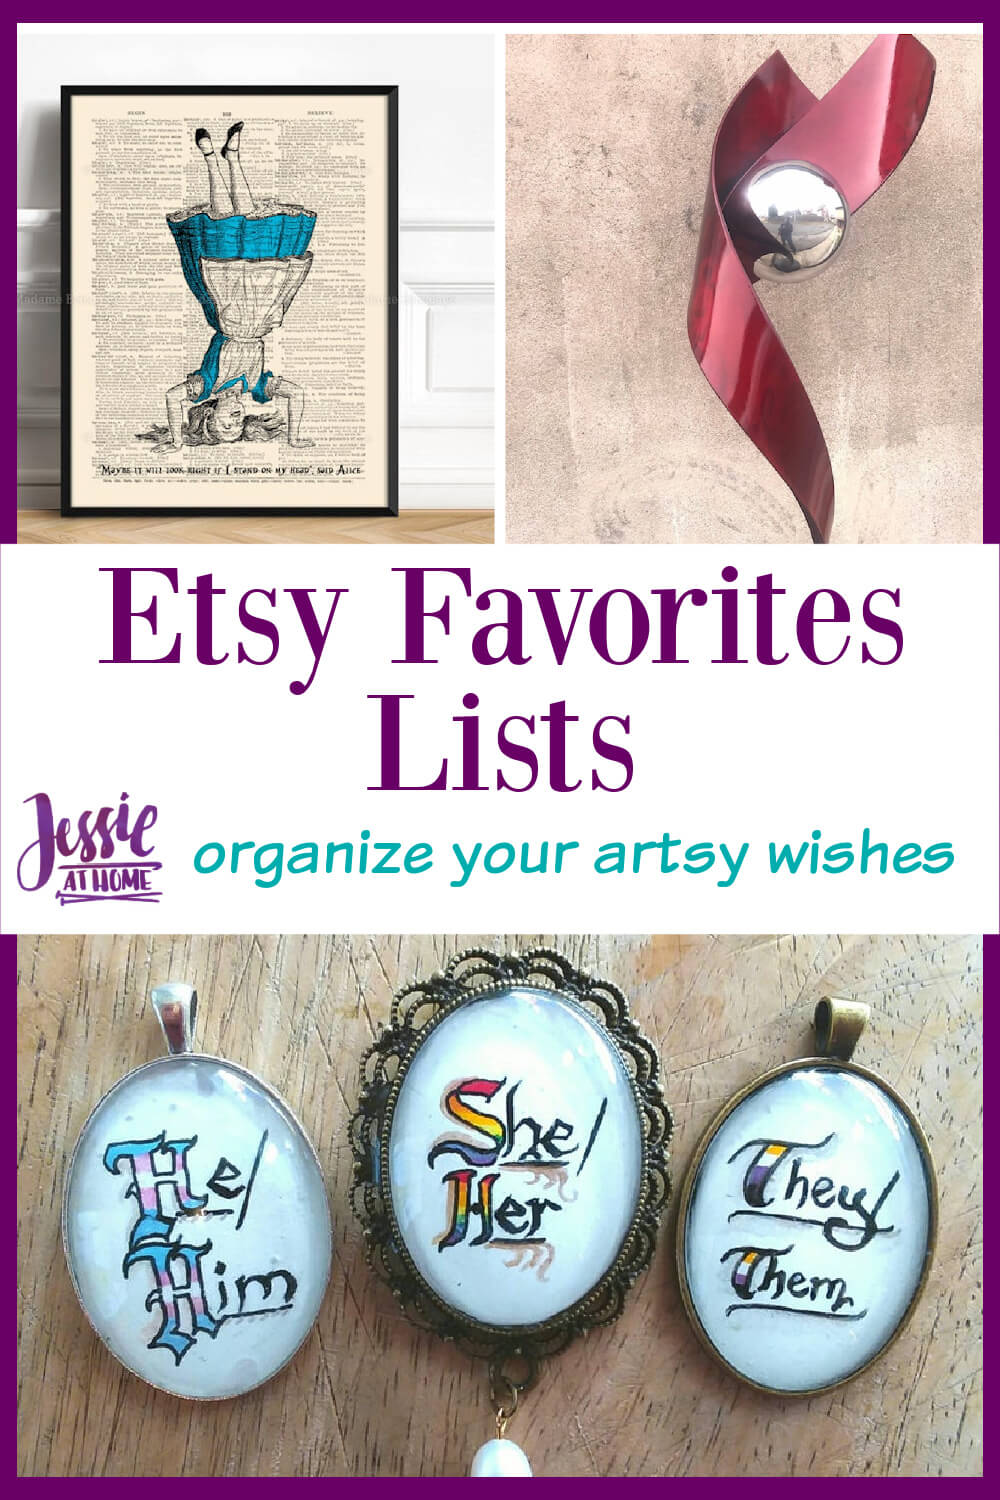 Etsy Favorites Lists - organize your artsy wishes